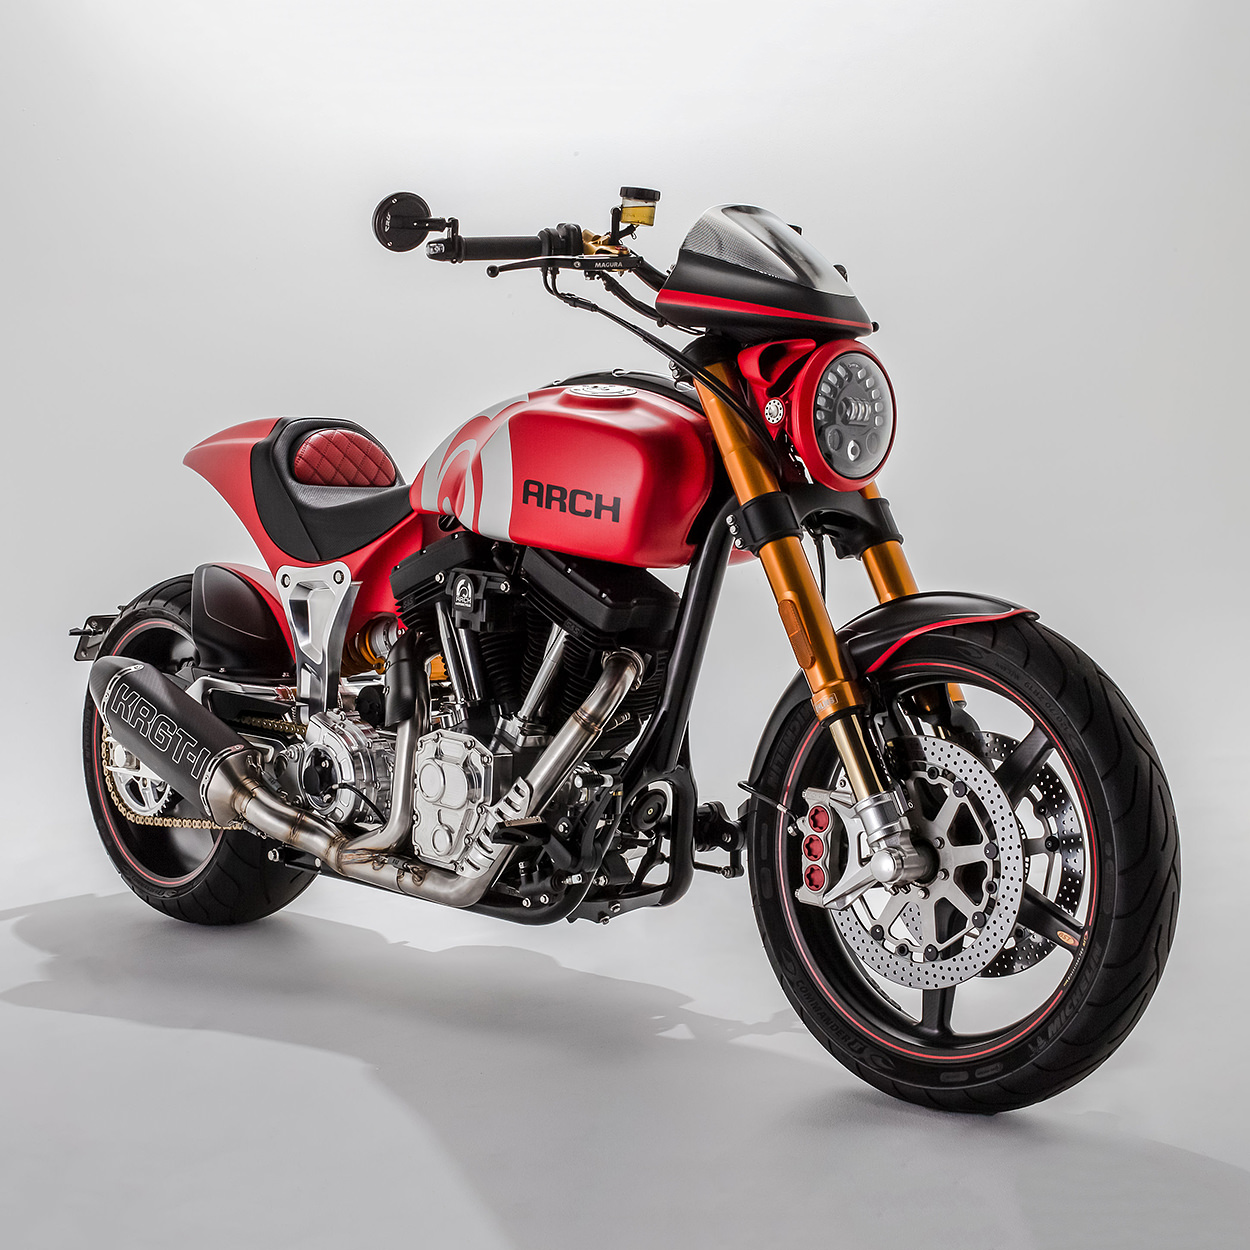 The 2020 KRGT-1 motorcycle from Keanu Reeves' company Arch